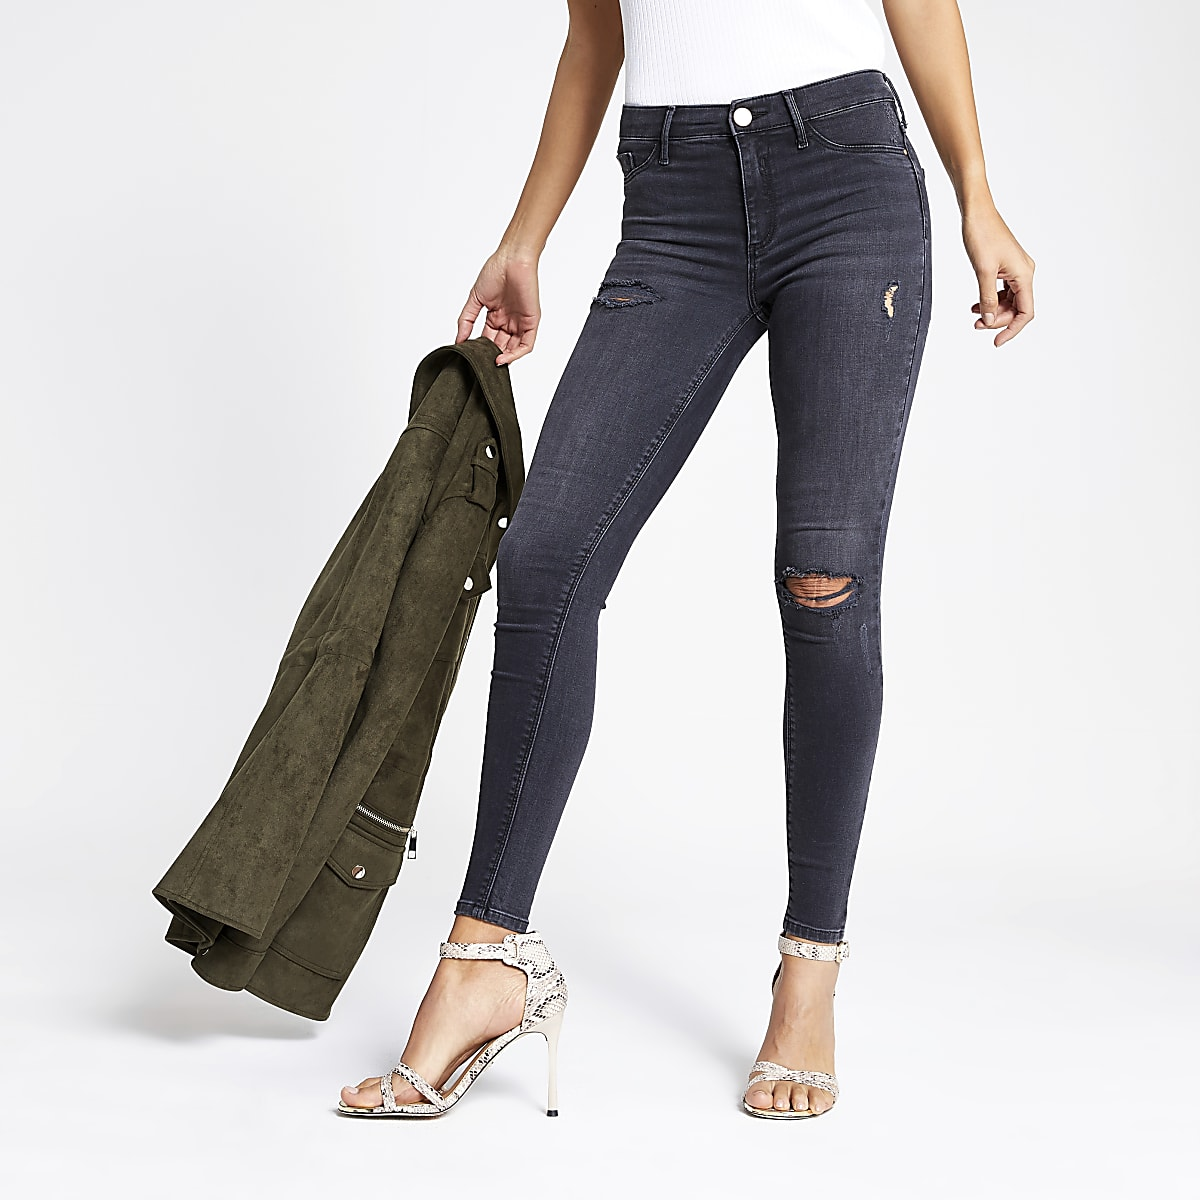 Black Molly mid rise ripped jeggings